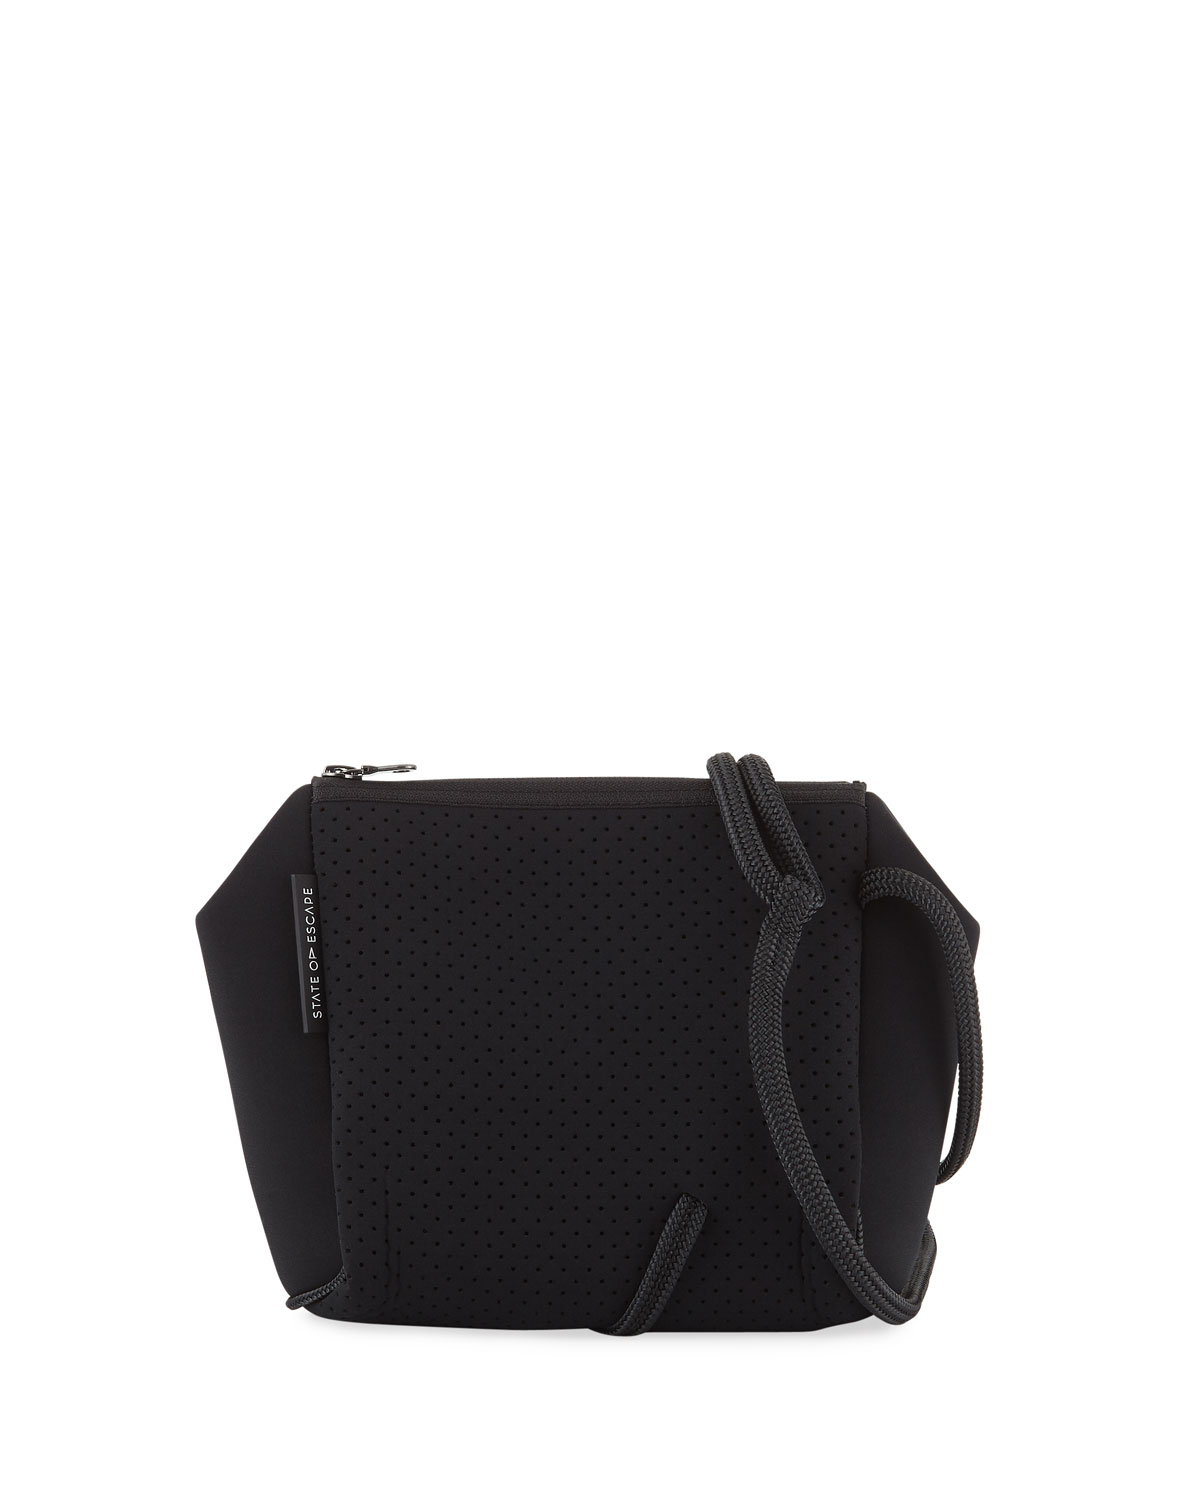 58f174f1c5cf State of Escape Festival Mini Crossbody Bag